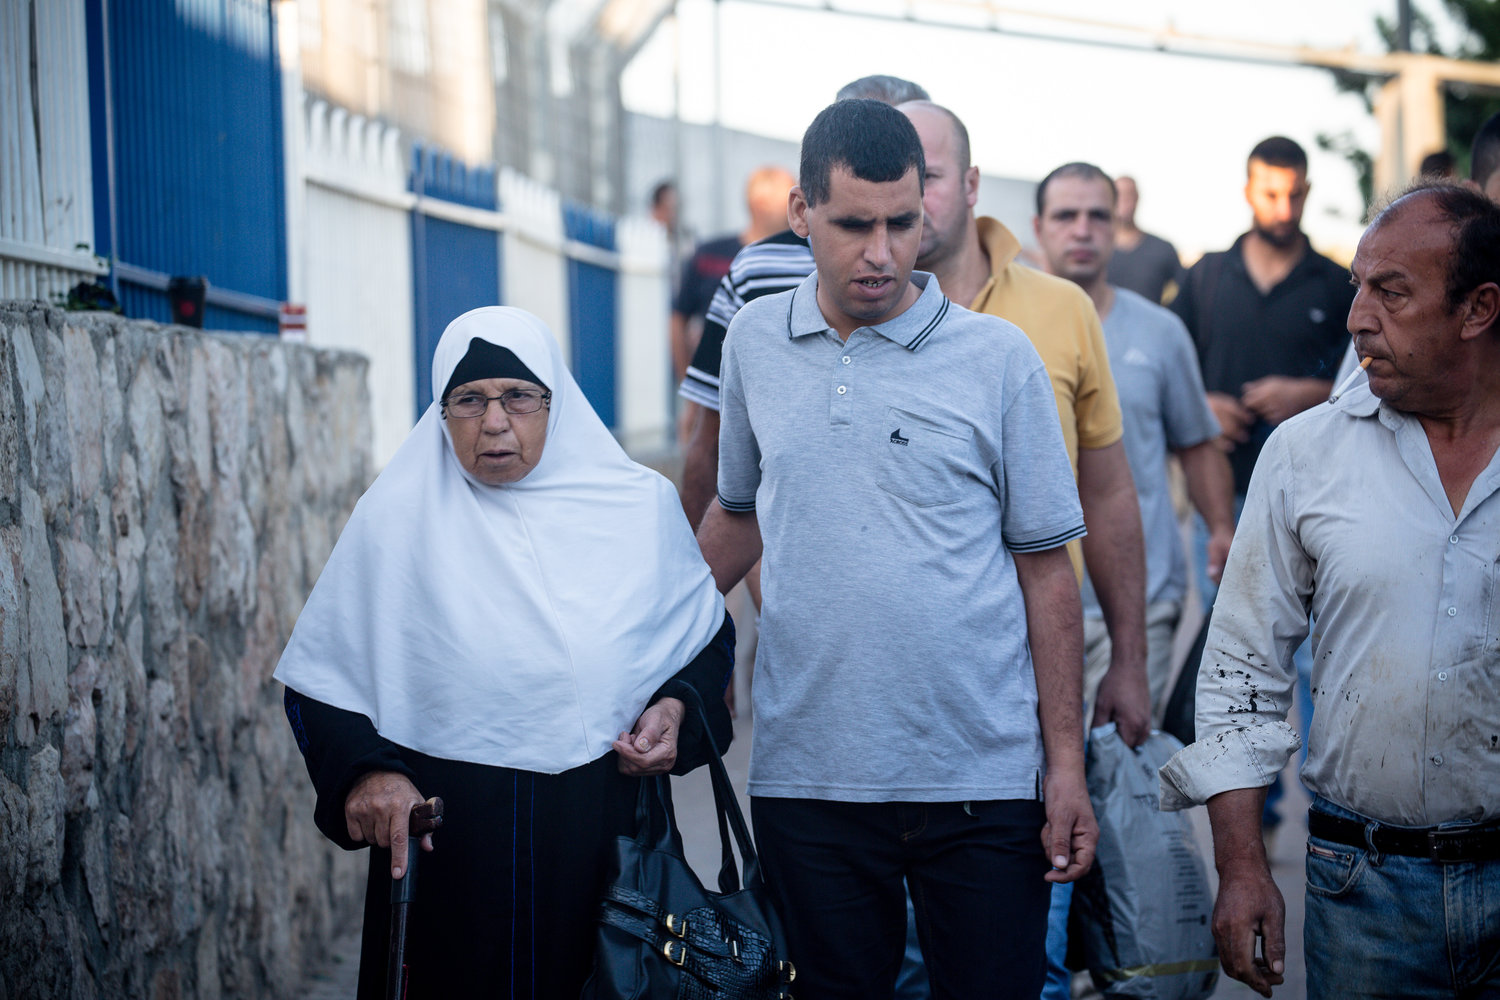 Not every Palestinian crossing into Israel is going for work. Some 15 percent cross the border for medical, educational or other purposes.